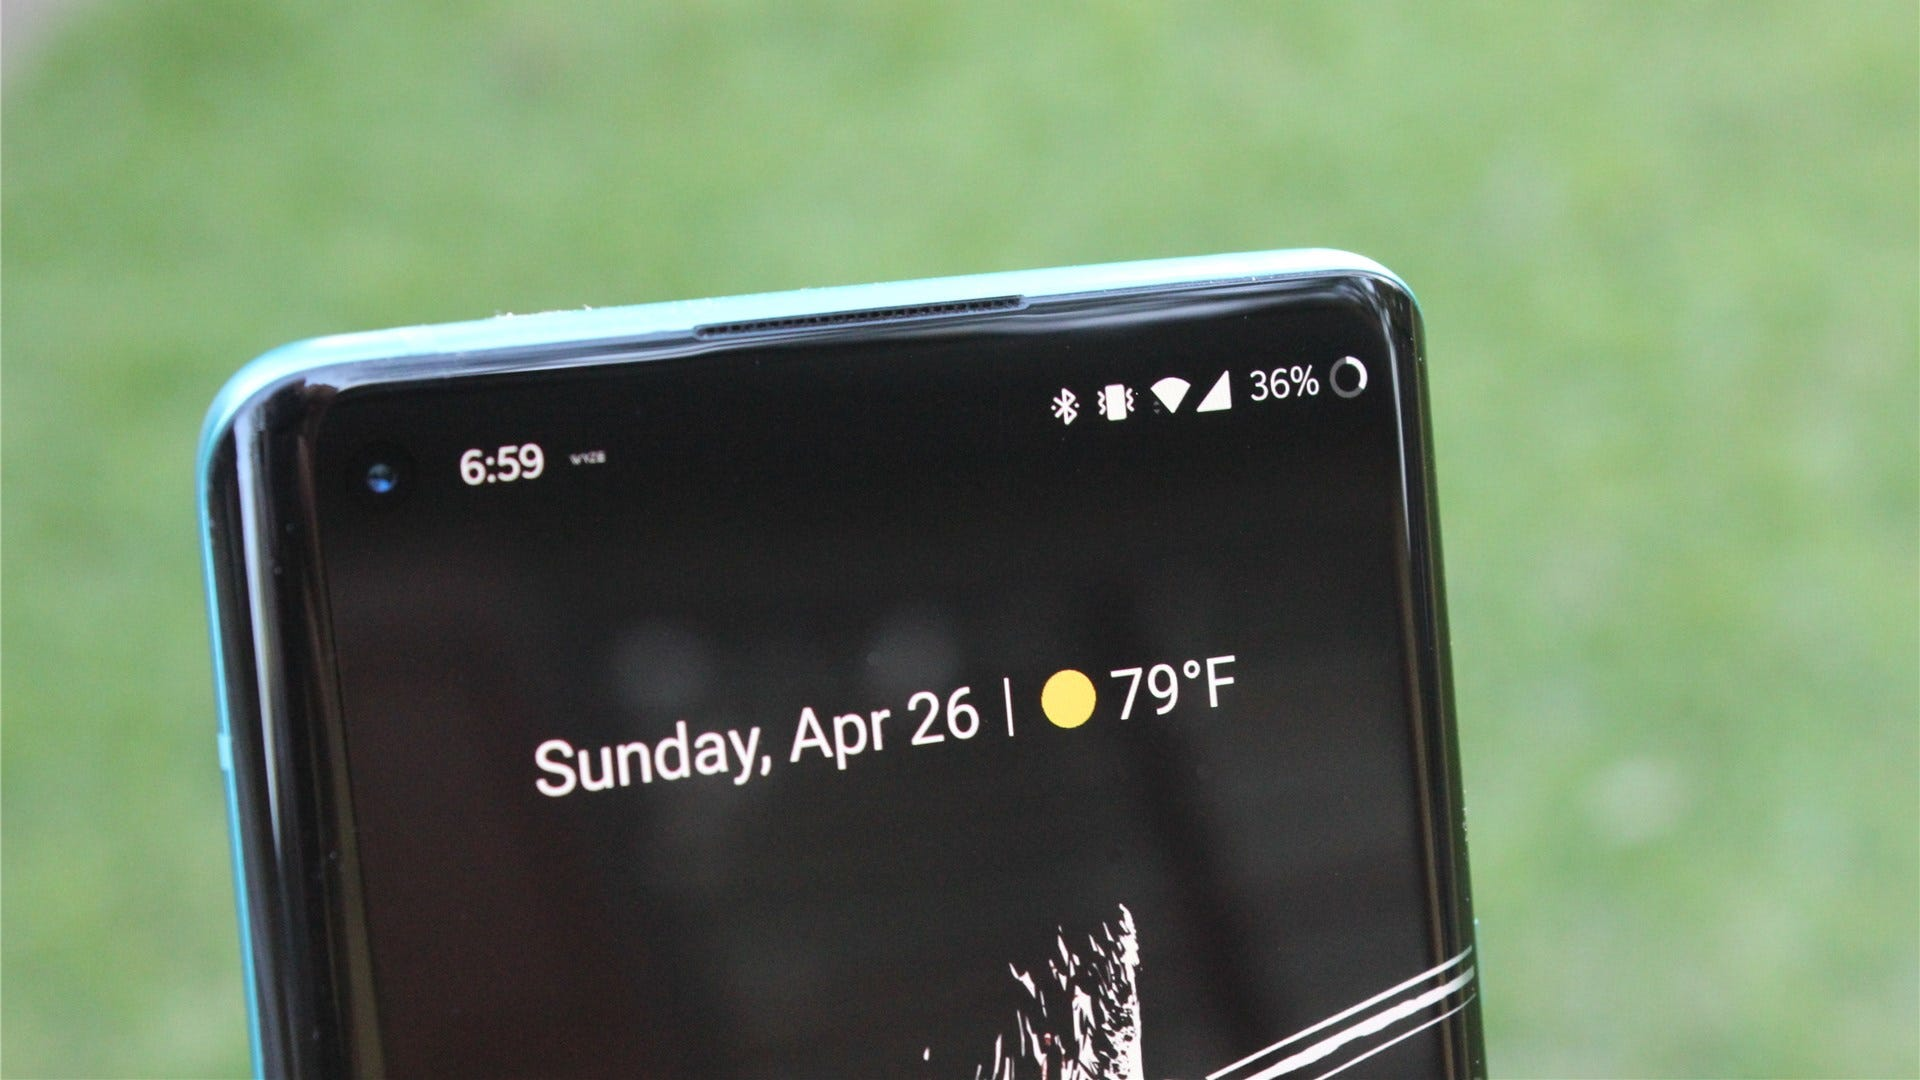 The battery indicator on the OnePlus 8 Pro